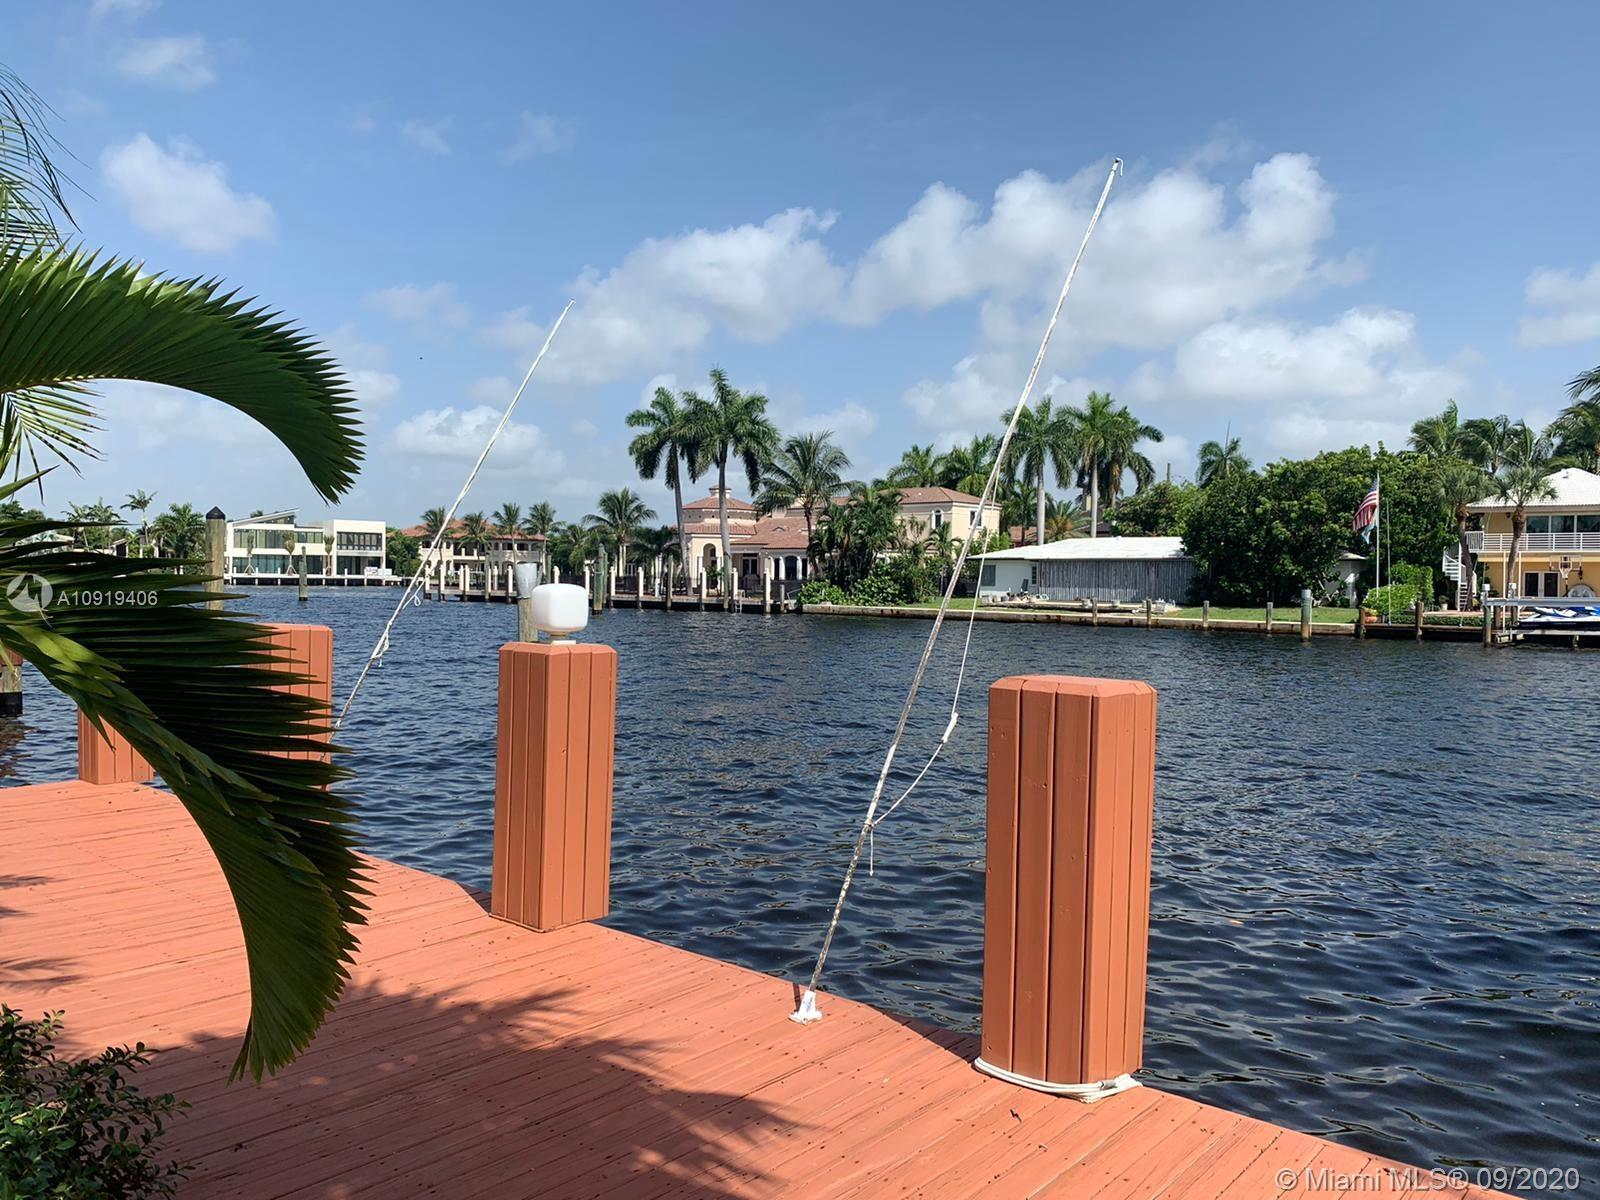 "BEAUTIFUL HOUSE , 200 ft wide canal Newly remodeled ""Magazine Quality Home"" Wide water and intracostal views 3/3 1/2 /2cg pool , new dock, 2900 sg ft, lush landscaping walk to the beach,courtyard gated entrance,foyer entrance ,open great room, french doors open to the cove red marble patio and pool area with amazing views, new designer kitchen ,granite counters ,formal dining room,3 bedrooms in suite designer baths,split floor plan,plus guest 1/2 bath , inside laundry room, HIGH IMPACT WINDWOWS Private gate to park and Beach access"